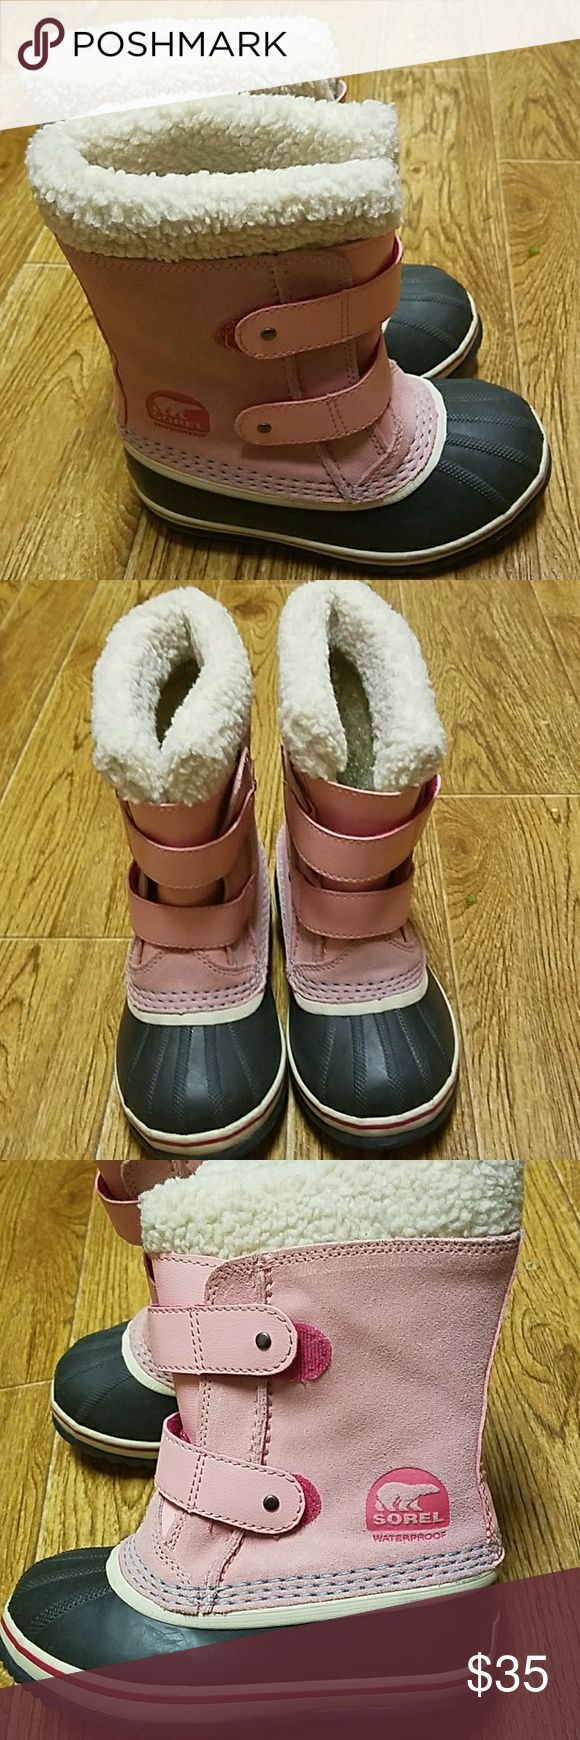 Little girls pink Sorel snow boots Super cute little girls pink SOREL 1964 PAC strap snow boots. Pre-loved. Still in good shape!!.  Waterproof. Little girls/ children's size 12.  See last pic of size chart and stock photo. Double velcro straps. Faux fur lining.  Smoke free home. Sorel Shoes Rain & Snow Boots